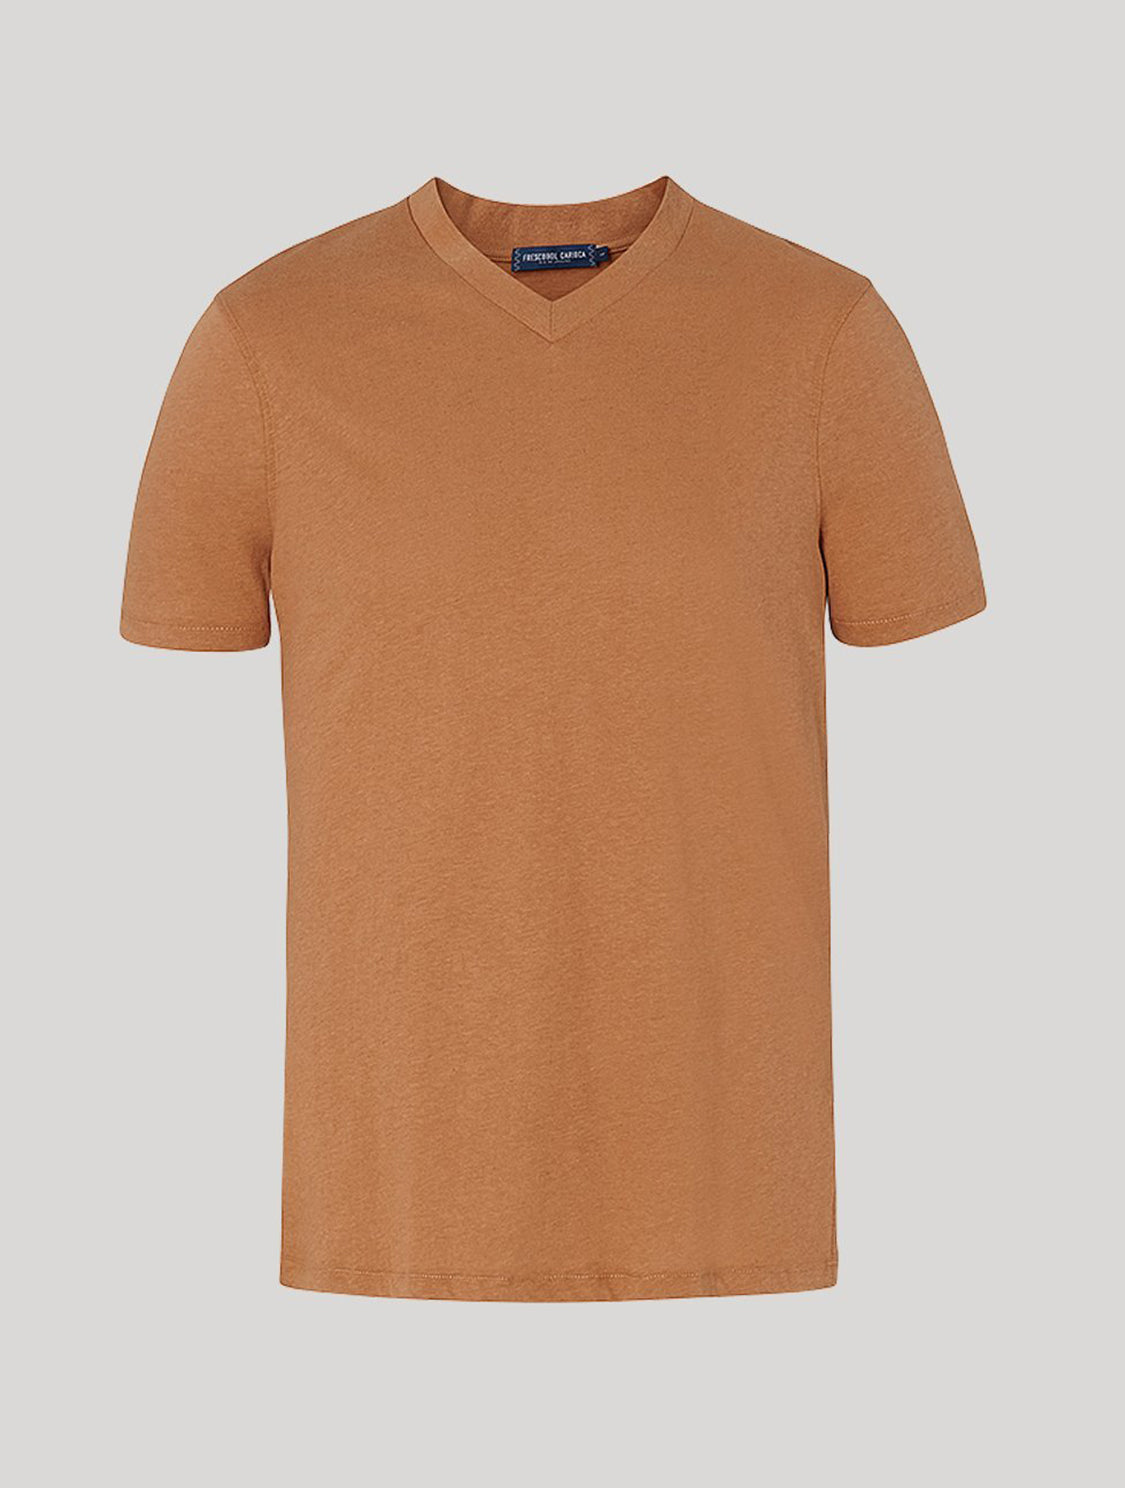 Victor T-Shirt Faded Chestnut XXXL